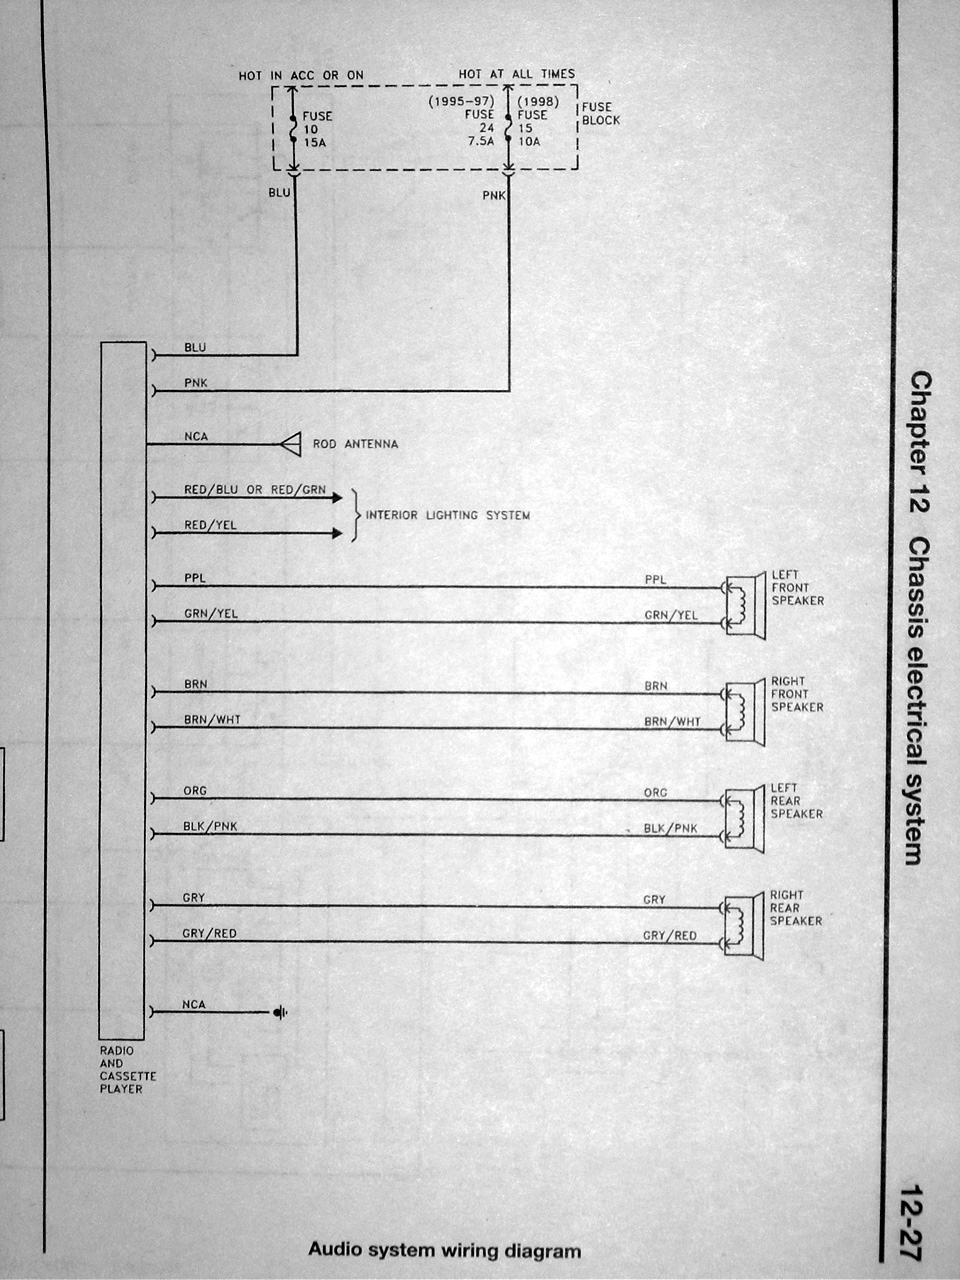 DSC01849 wiring diagram thread *useful info* nissan forum 2004 nissan sentra radio wiring diagram at sewacar.co